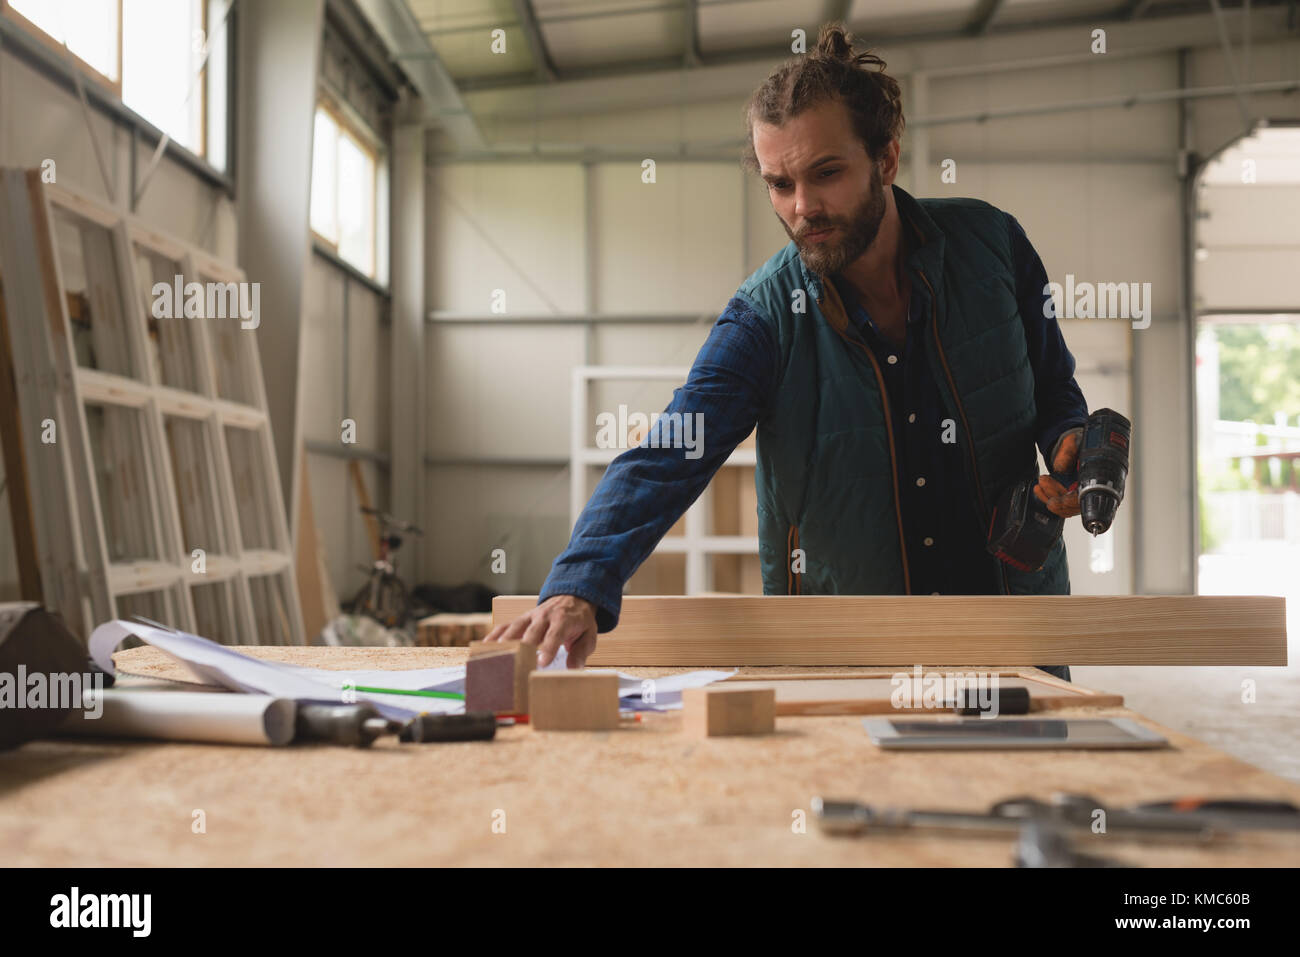 Carpenter working at table - Stock Image